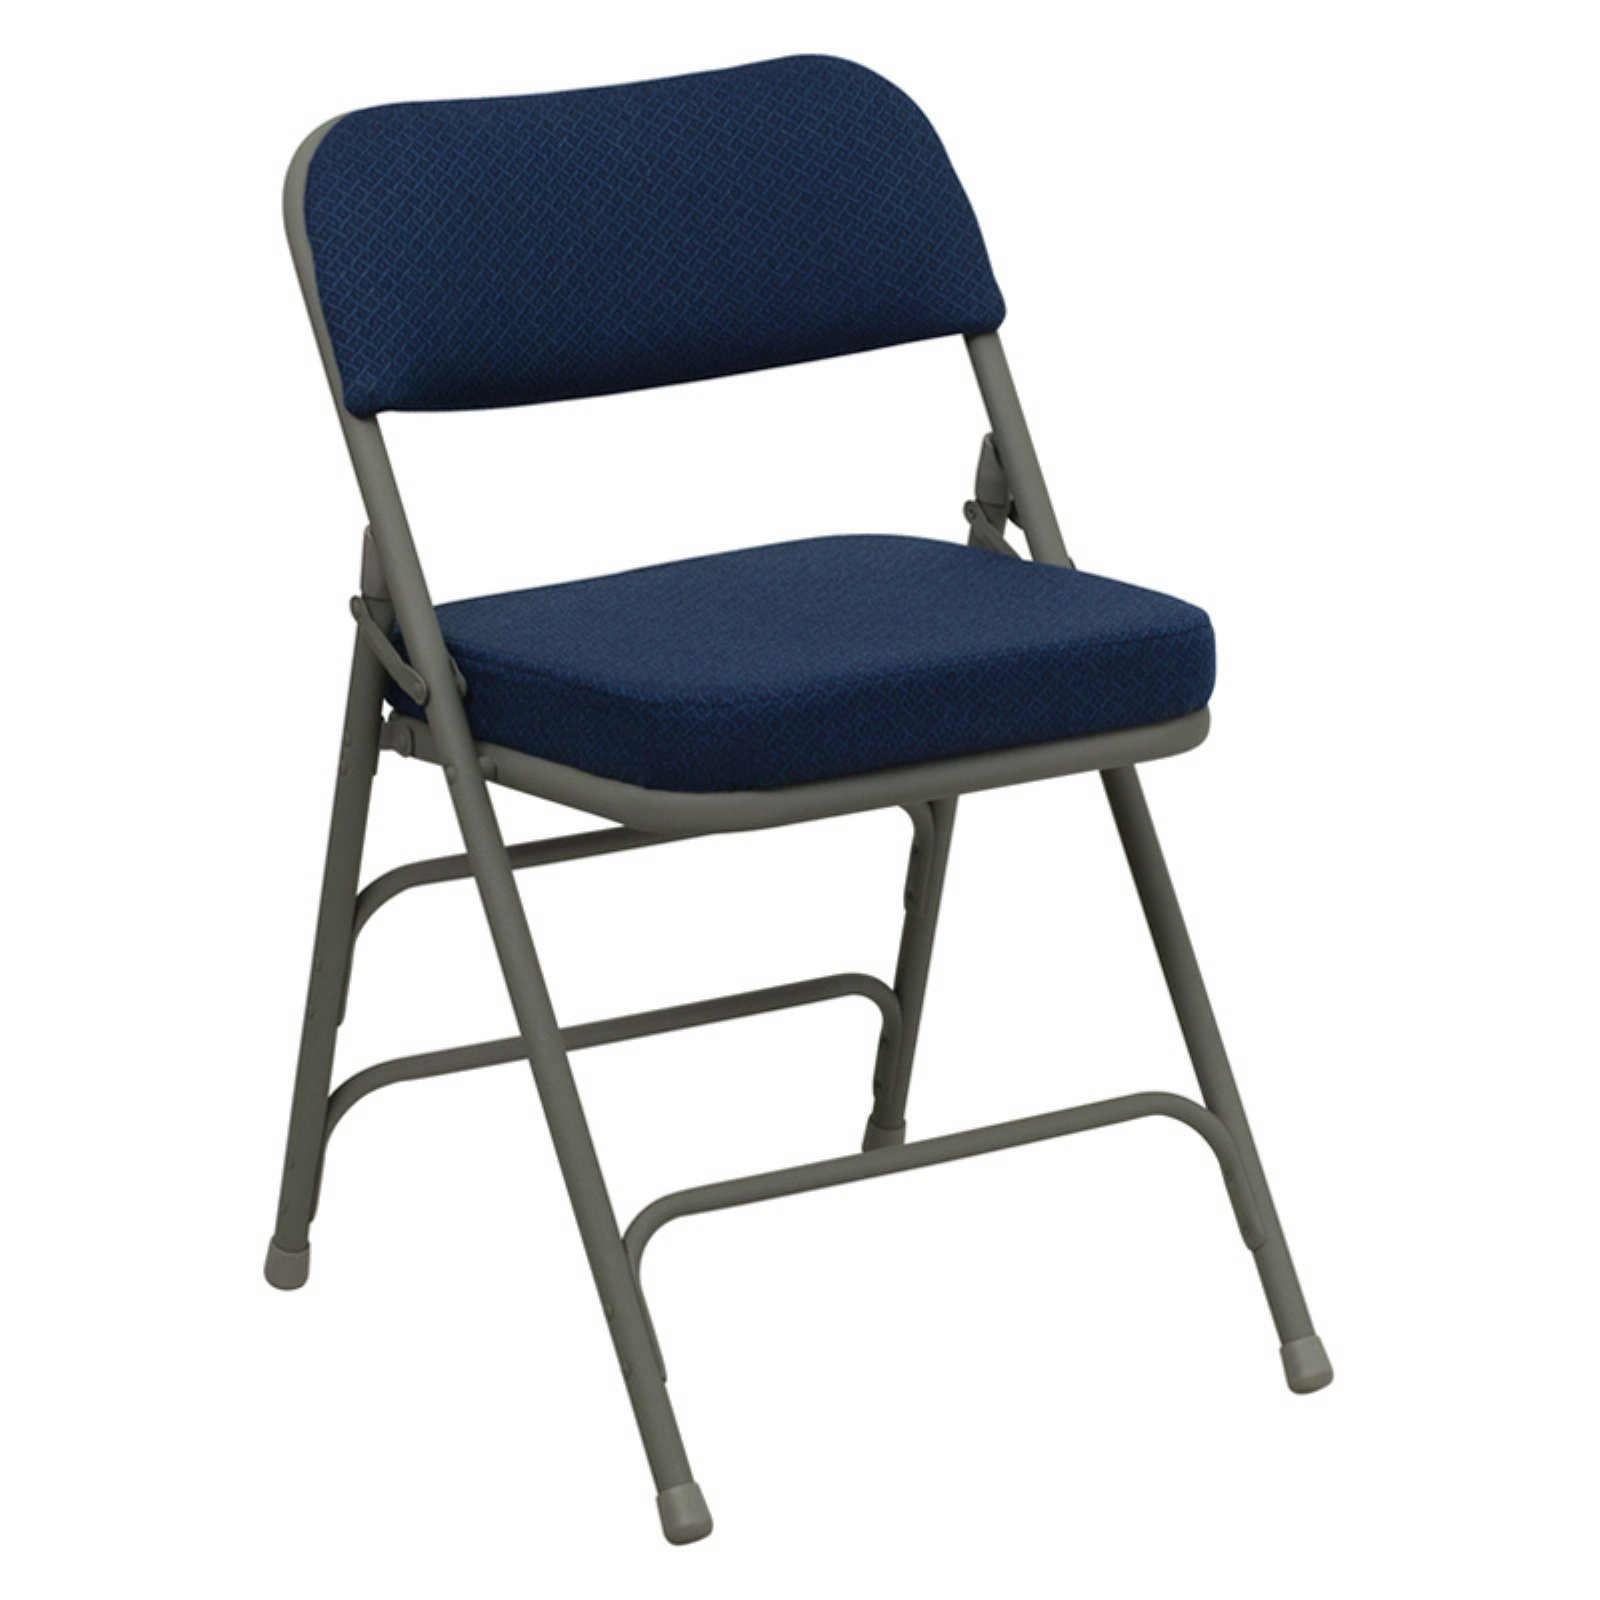 Flash Furniture HERCULES Series Premium Curved Triple Braced And Double  Hinged Fabric Upholstered Metal Folding Chair